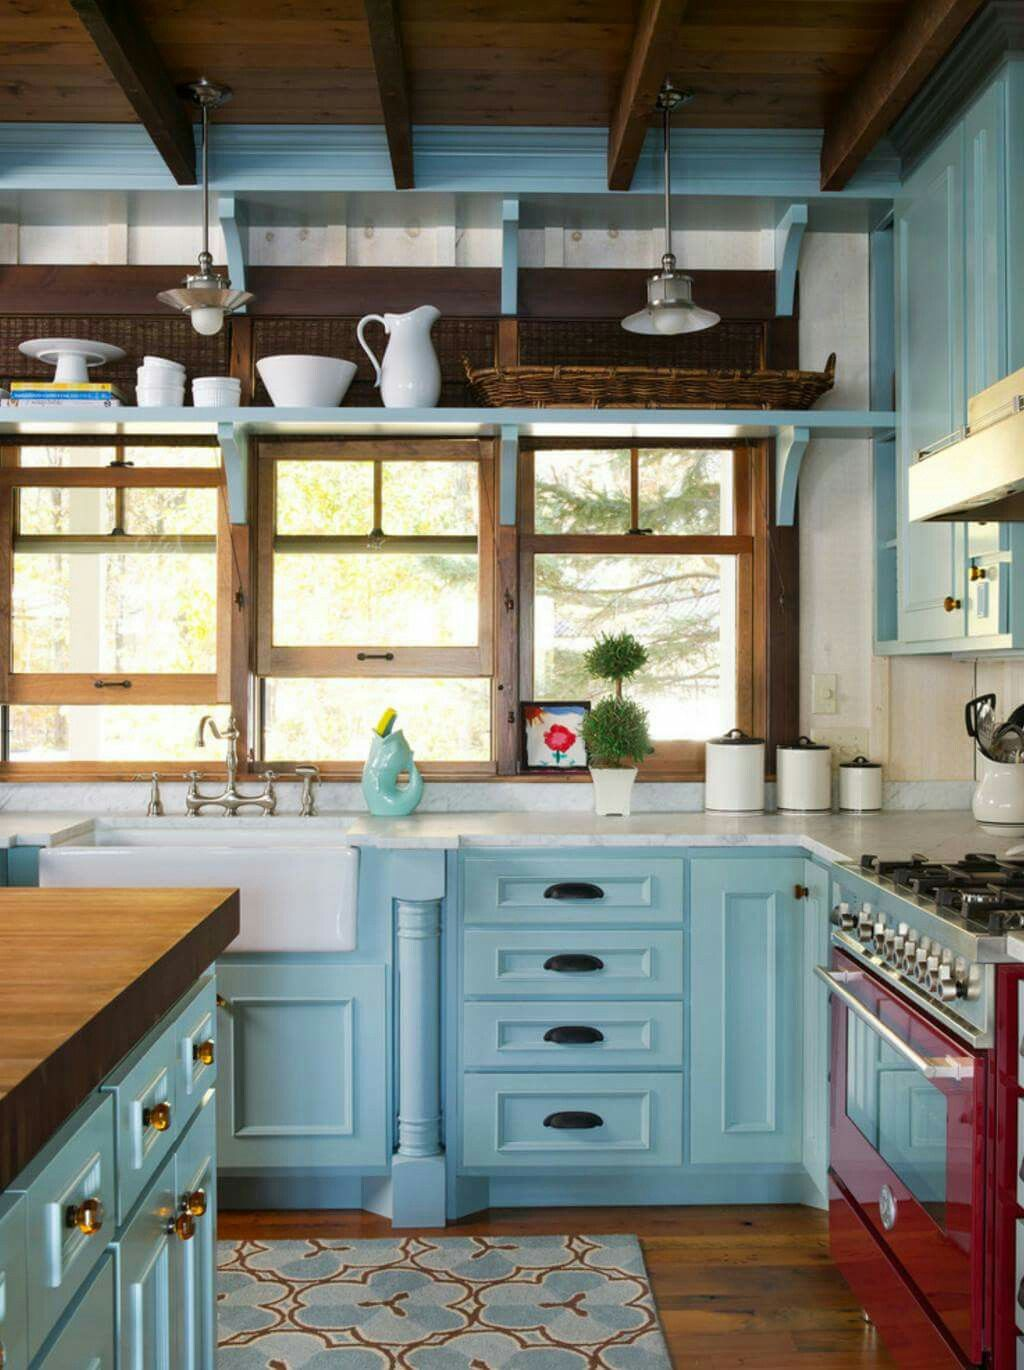 Pin by Victoria Iaconelli on HOME 2 | Pinterest | Kitchens, House ...